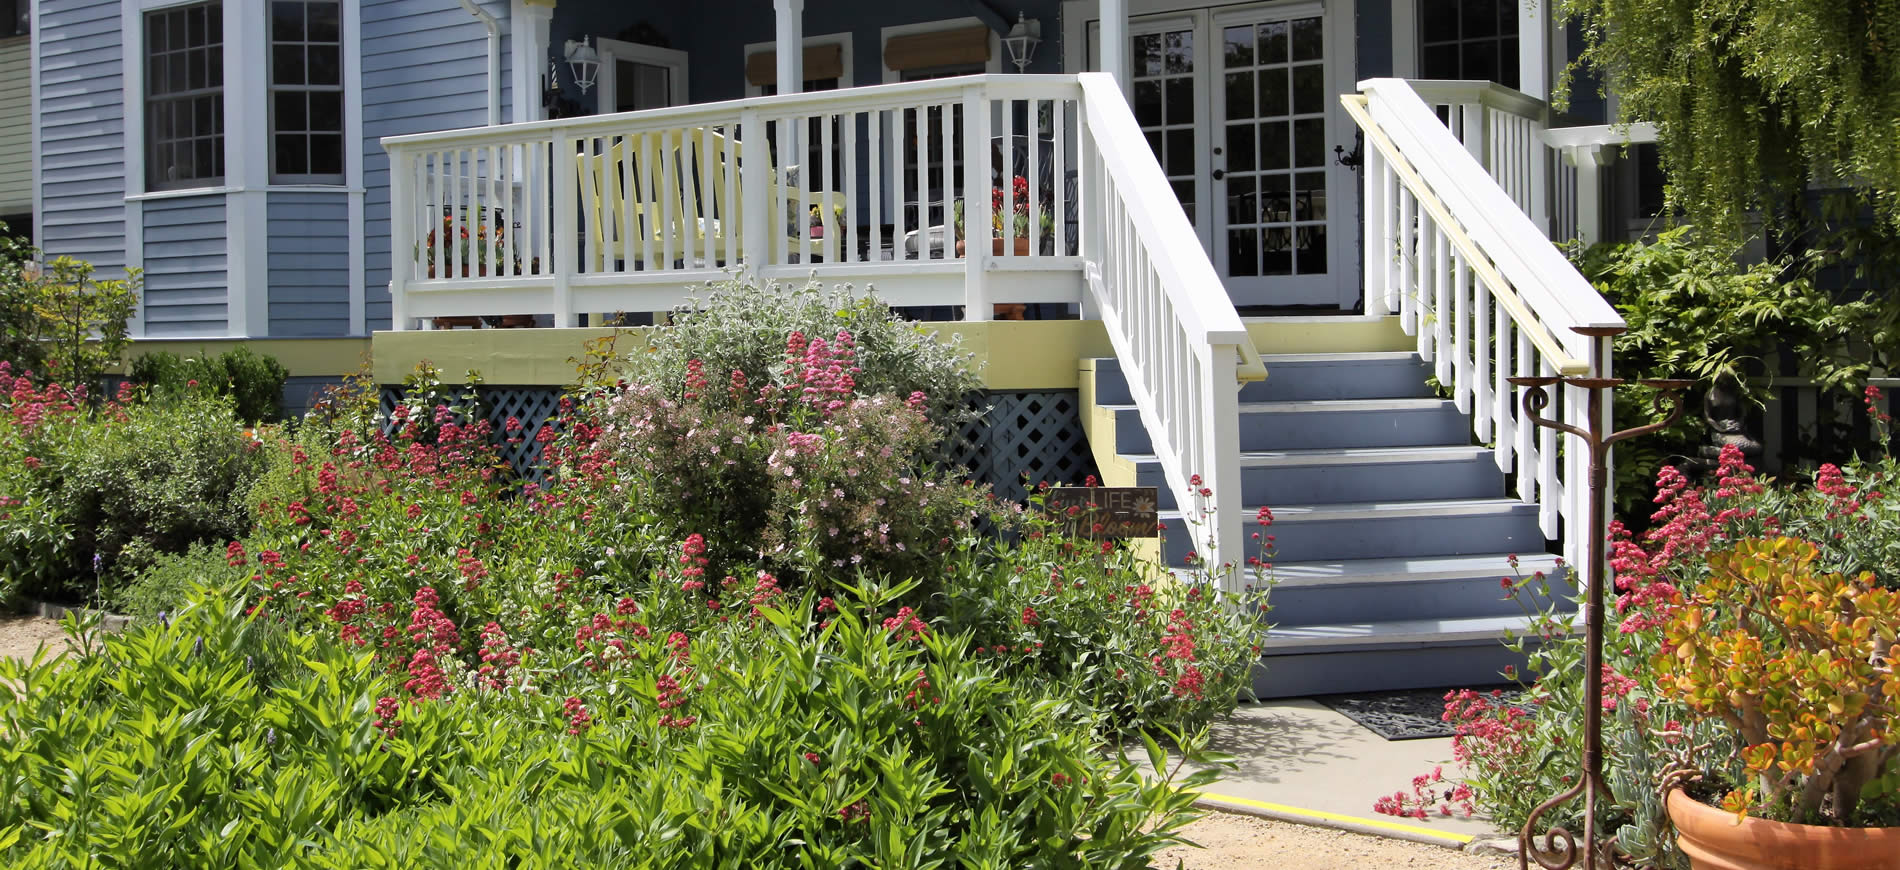 best boutique inn cambria gardens and deck